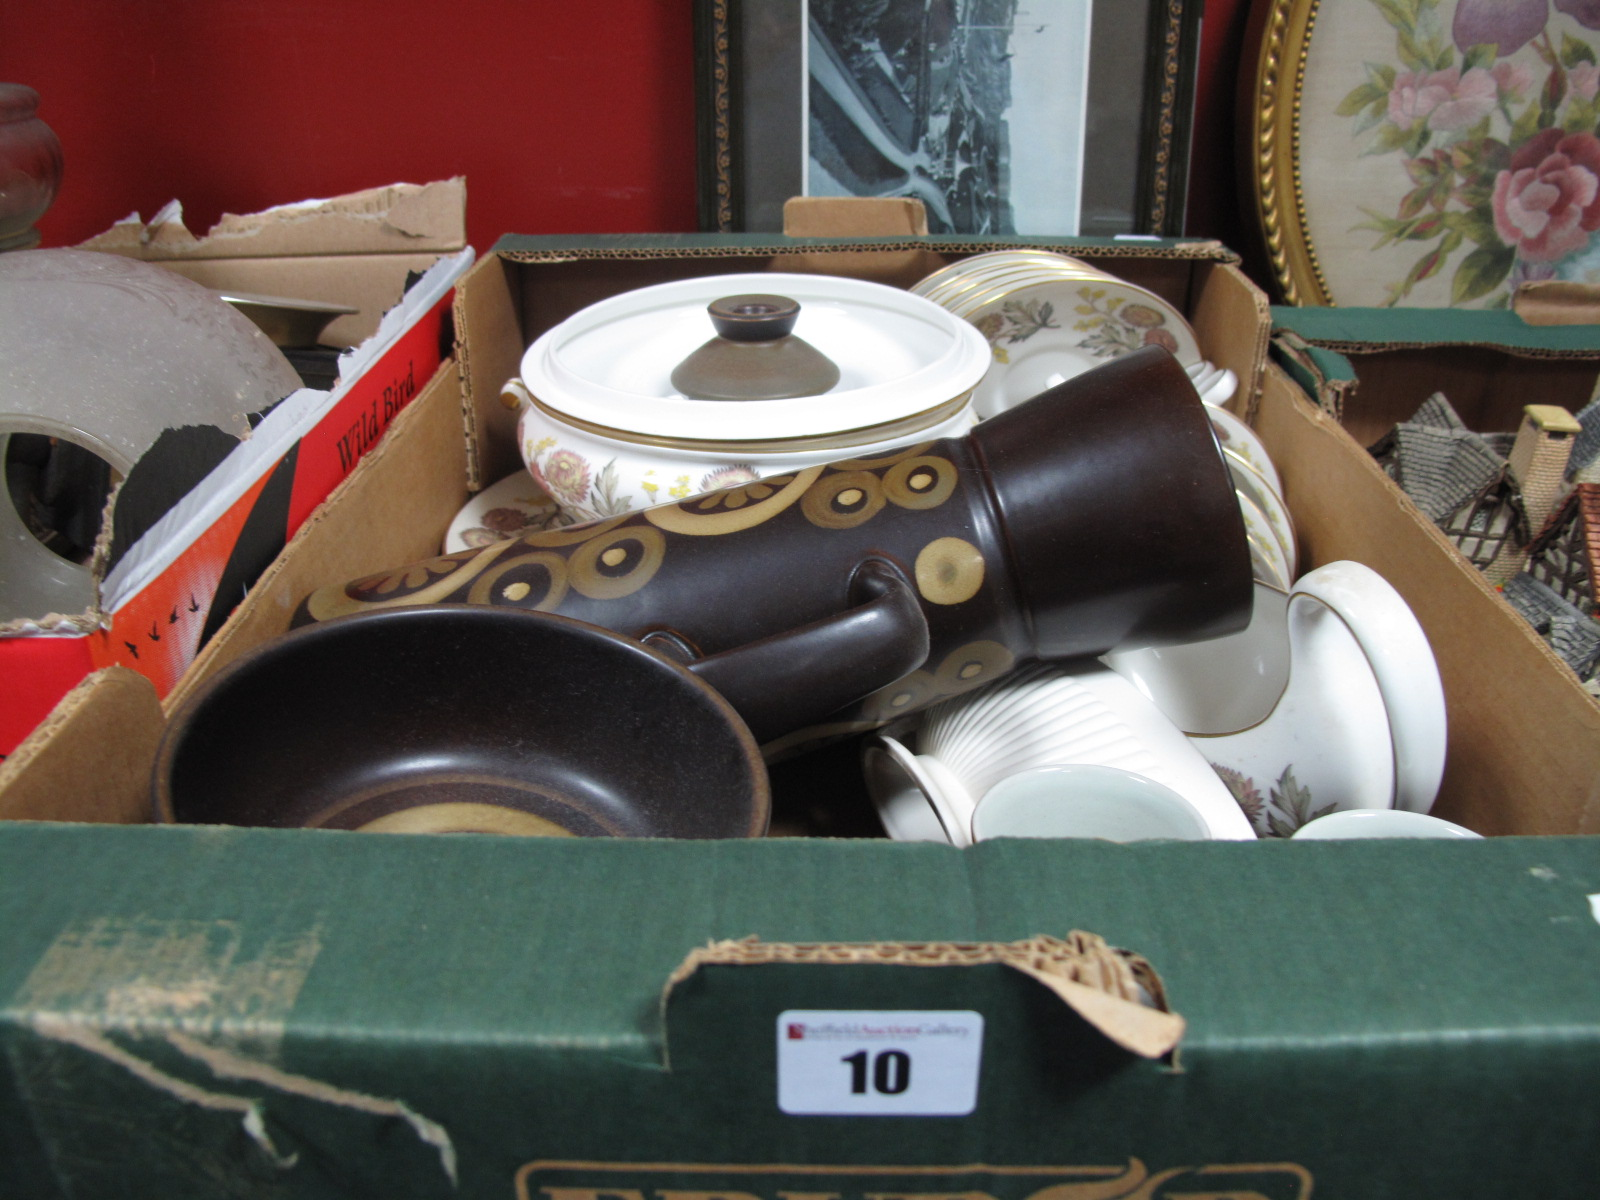 Lot 10 - 1970's Denby 'Arabesque' Pattern Coffee Ware, Wedgwood, 'Lichfield' dinner ware:- One Box